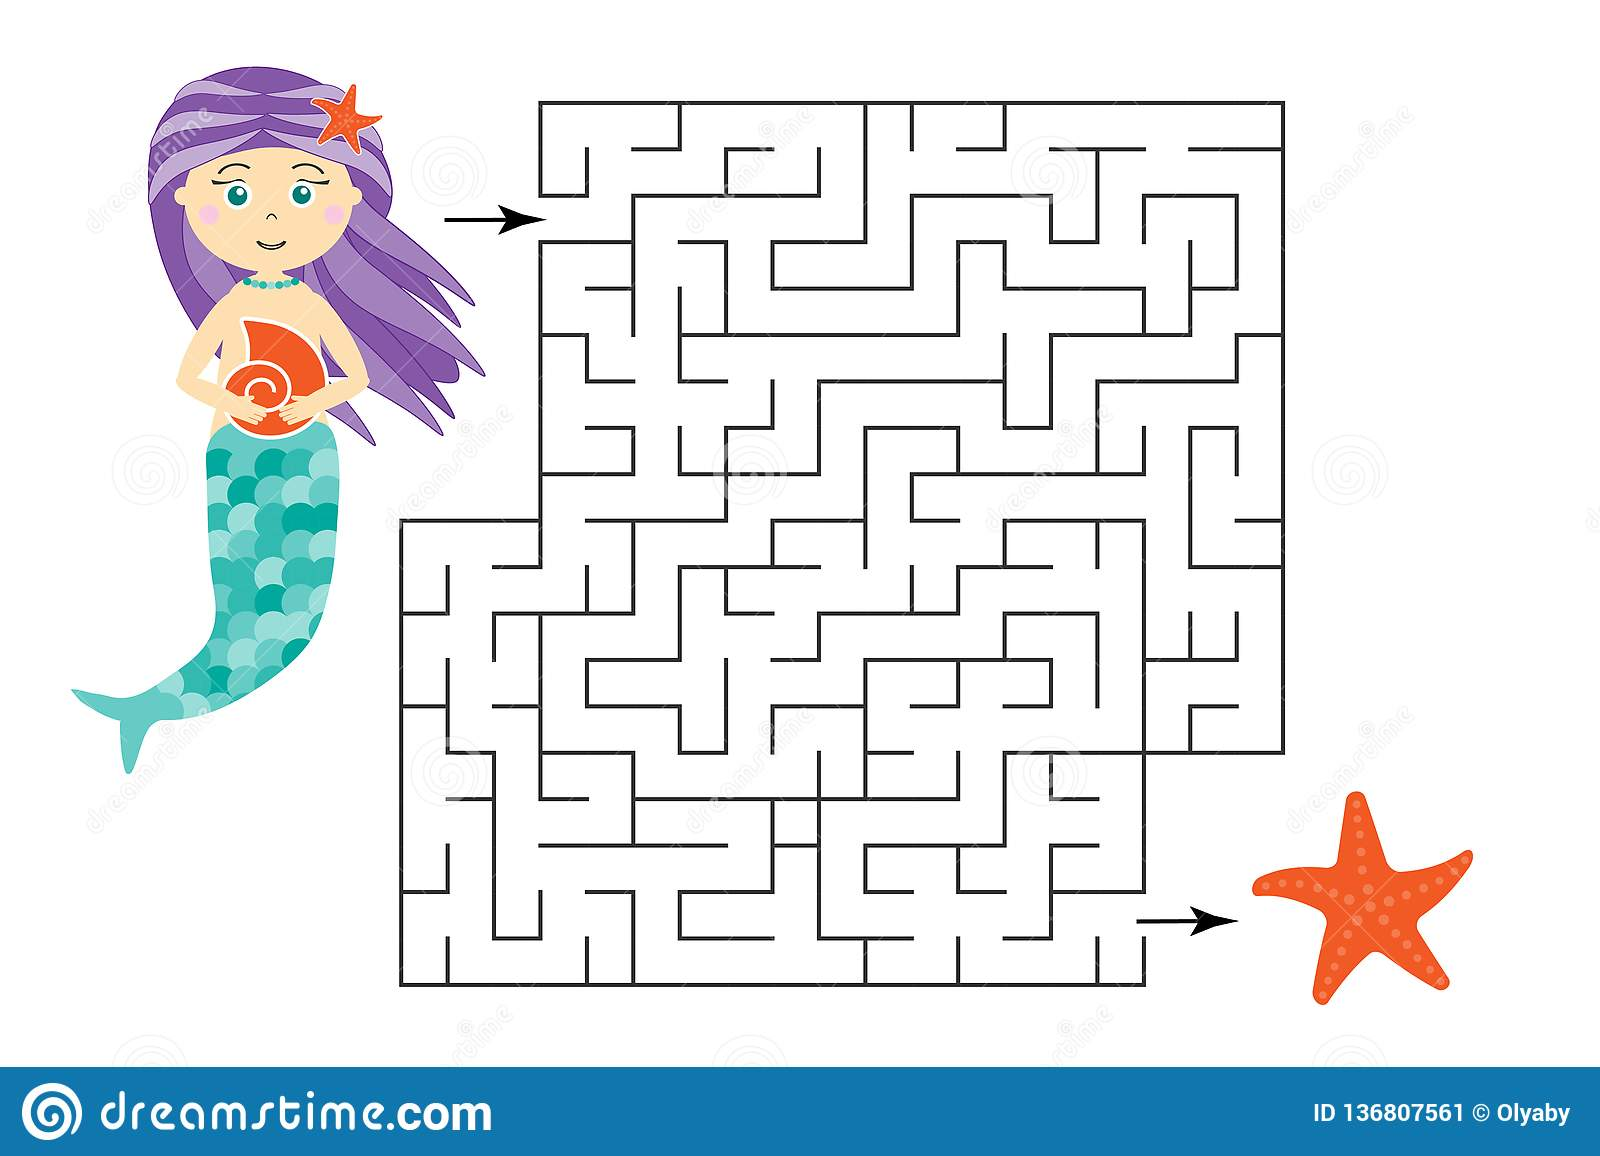 Labyrinth Game Help The Mermaid To Find A Way Out Of The